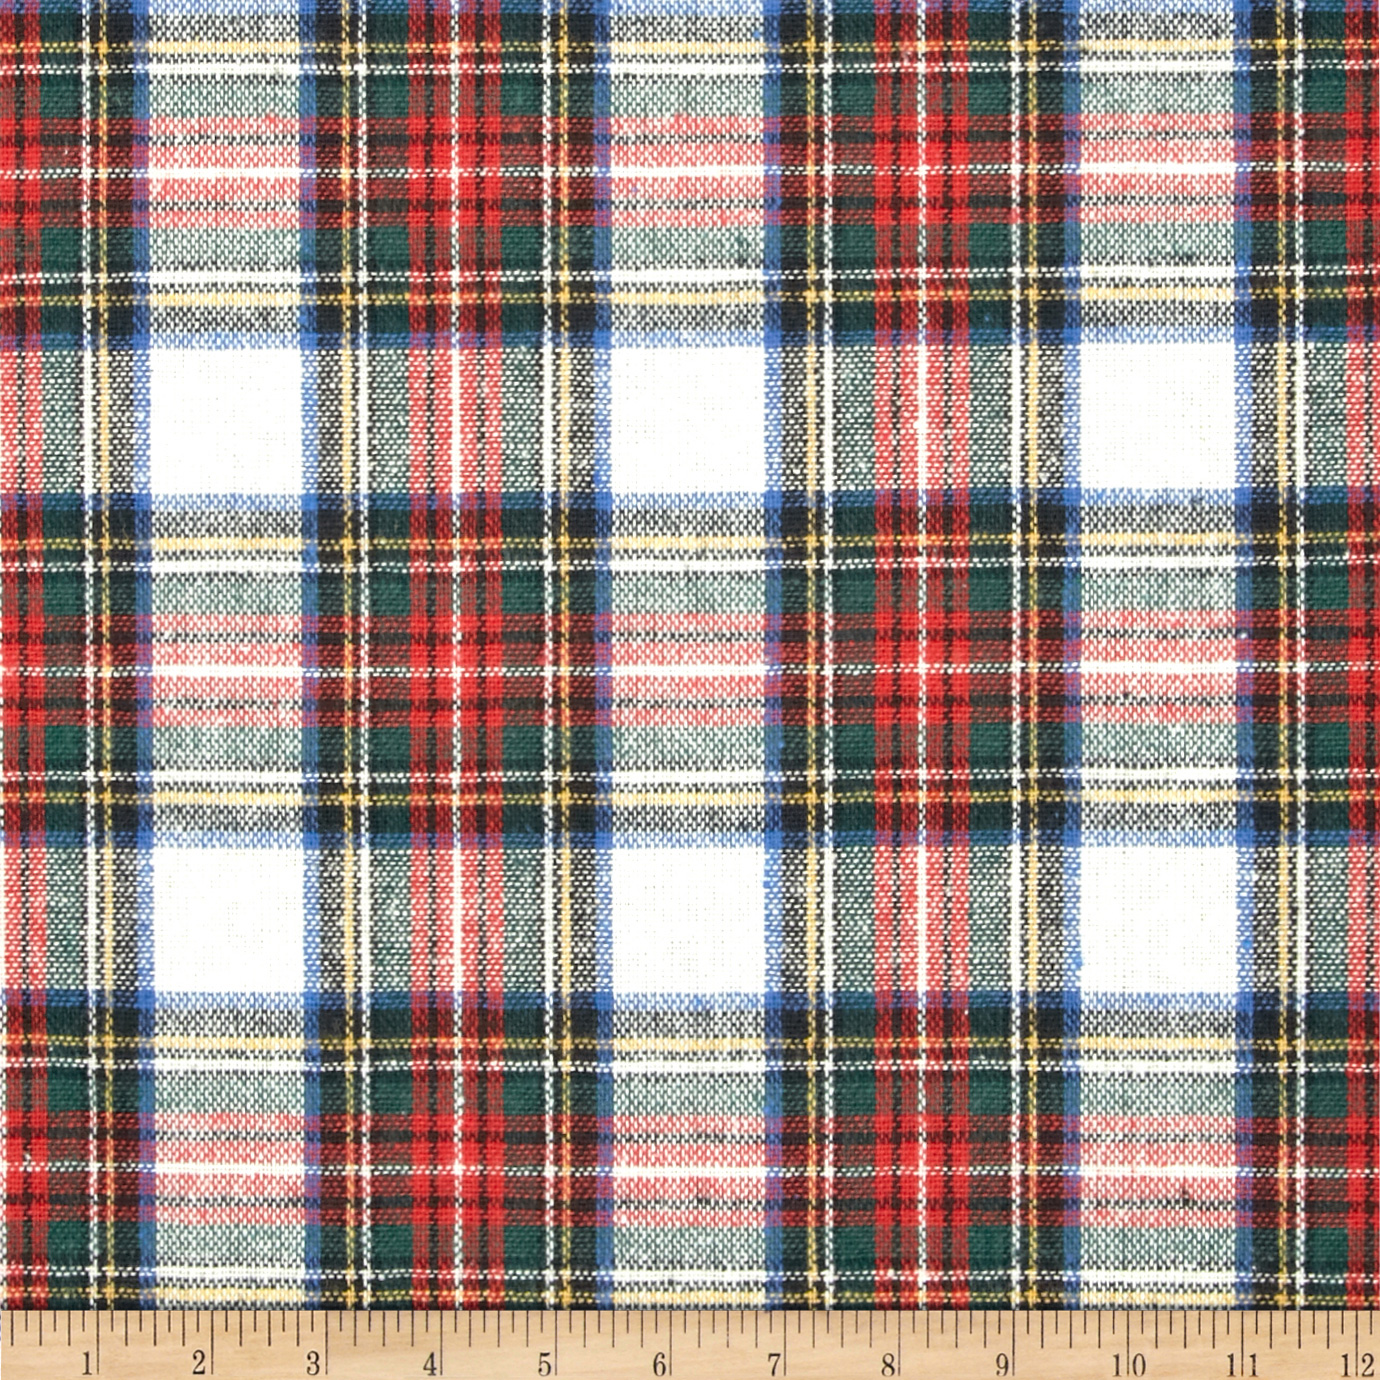 Washable Wool Plaid Cream/Red/Blue Fabric by Spechler-Vogel in USA